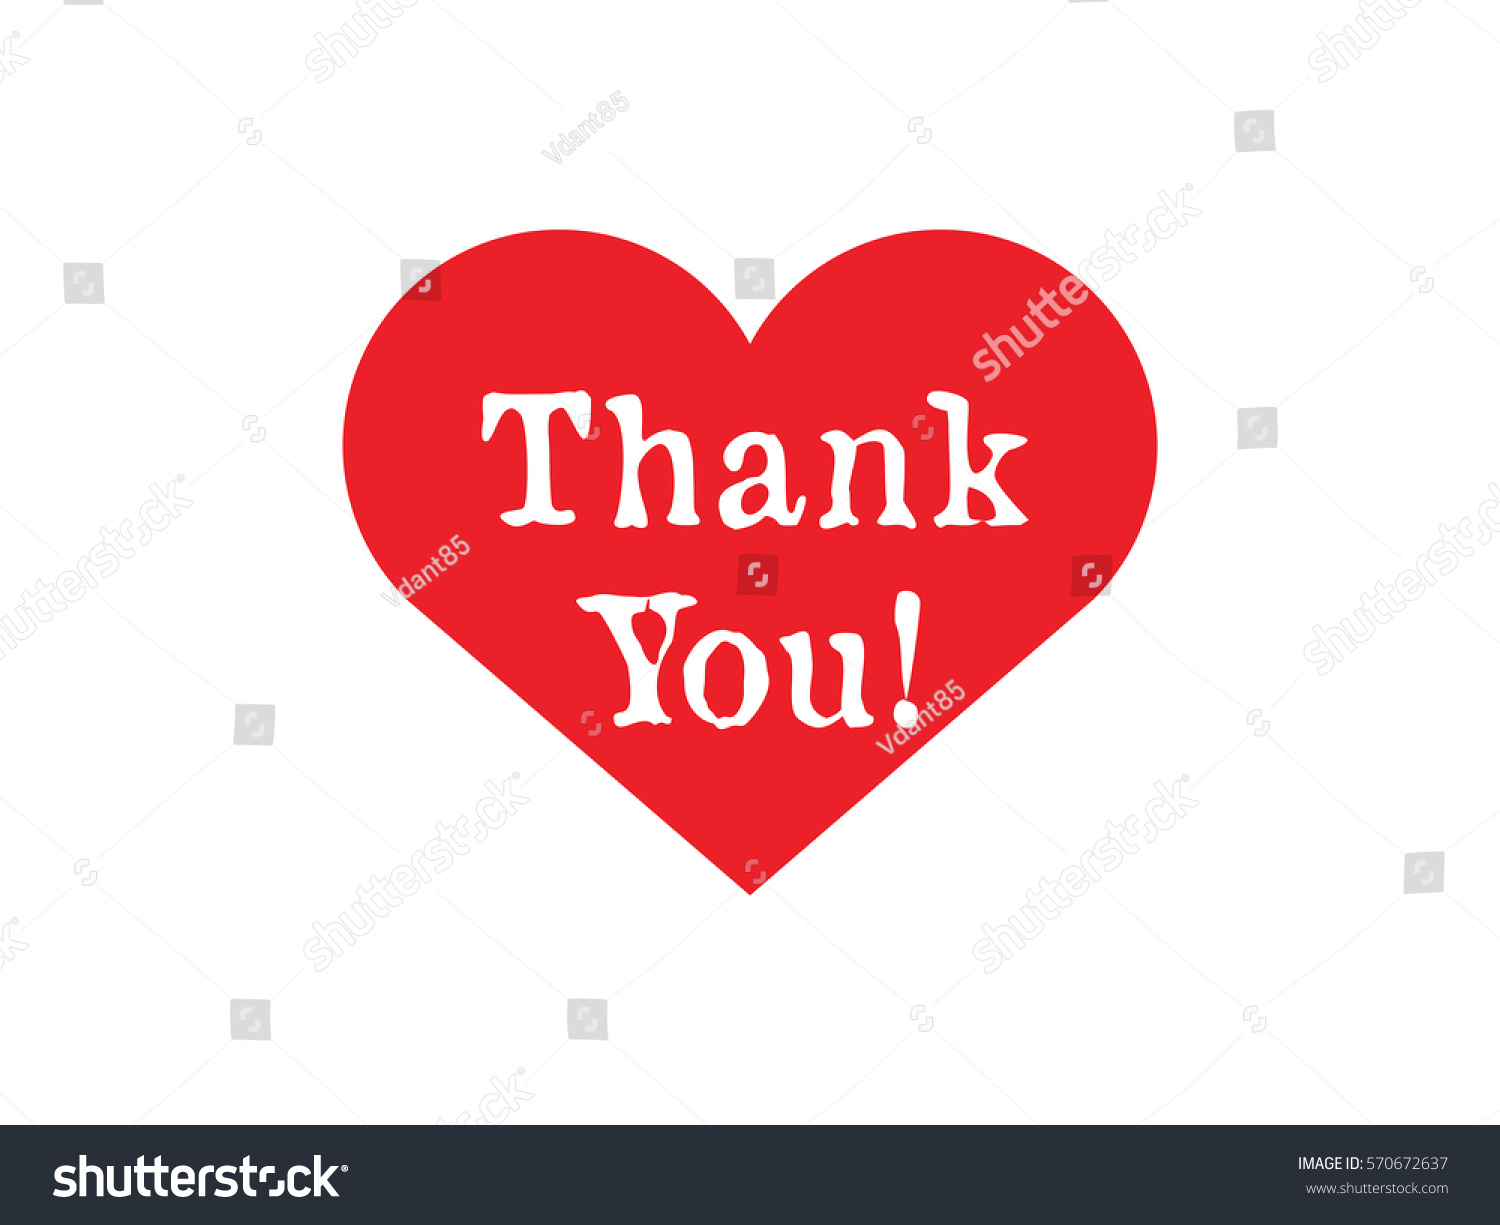 Thank You Typography Red Heart Shape Stock Vector